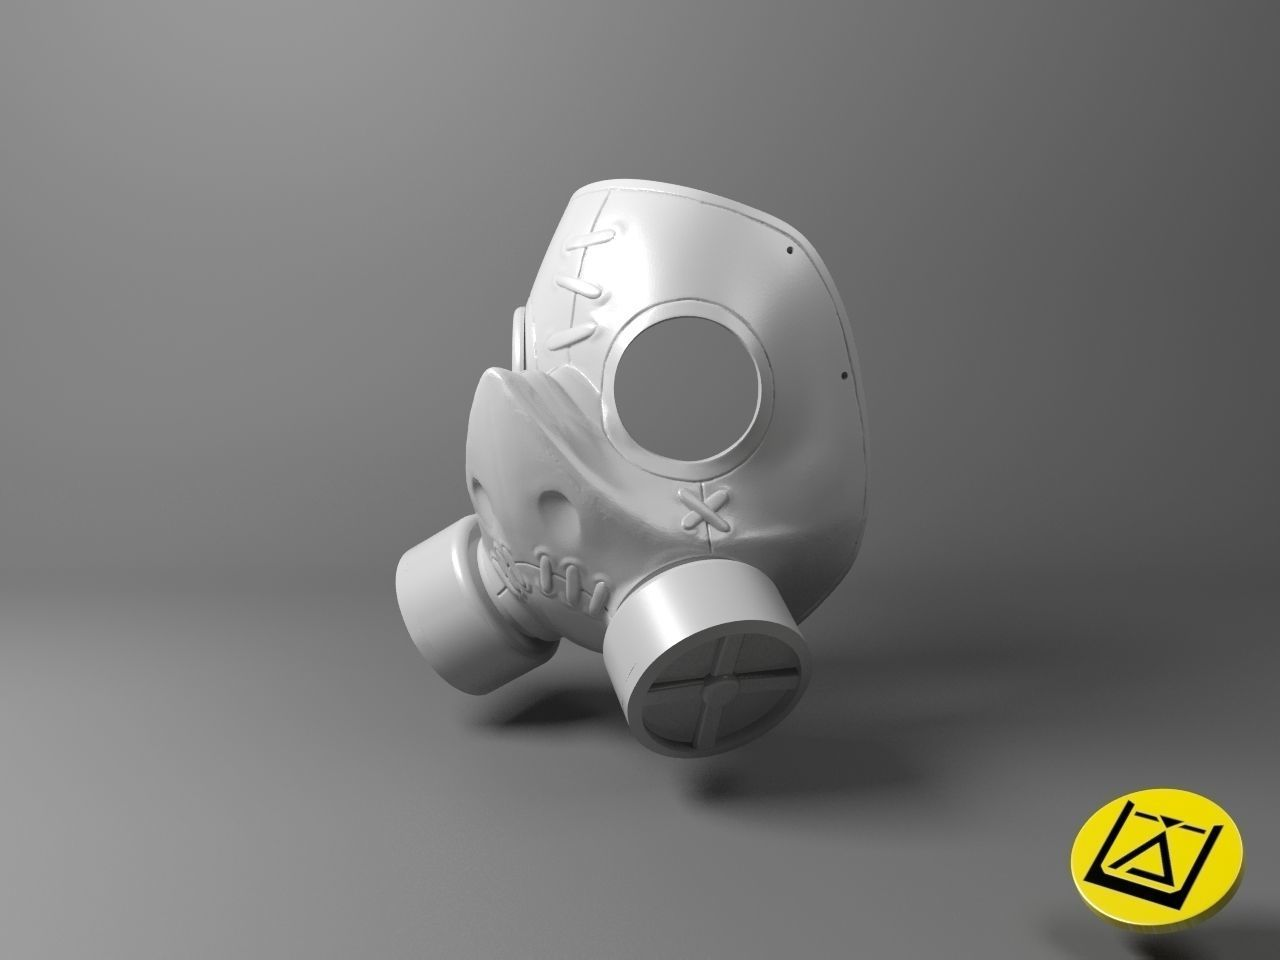 Roadhog mask - Overwatch game 3D print model